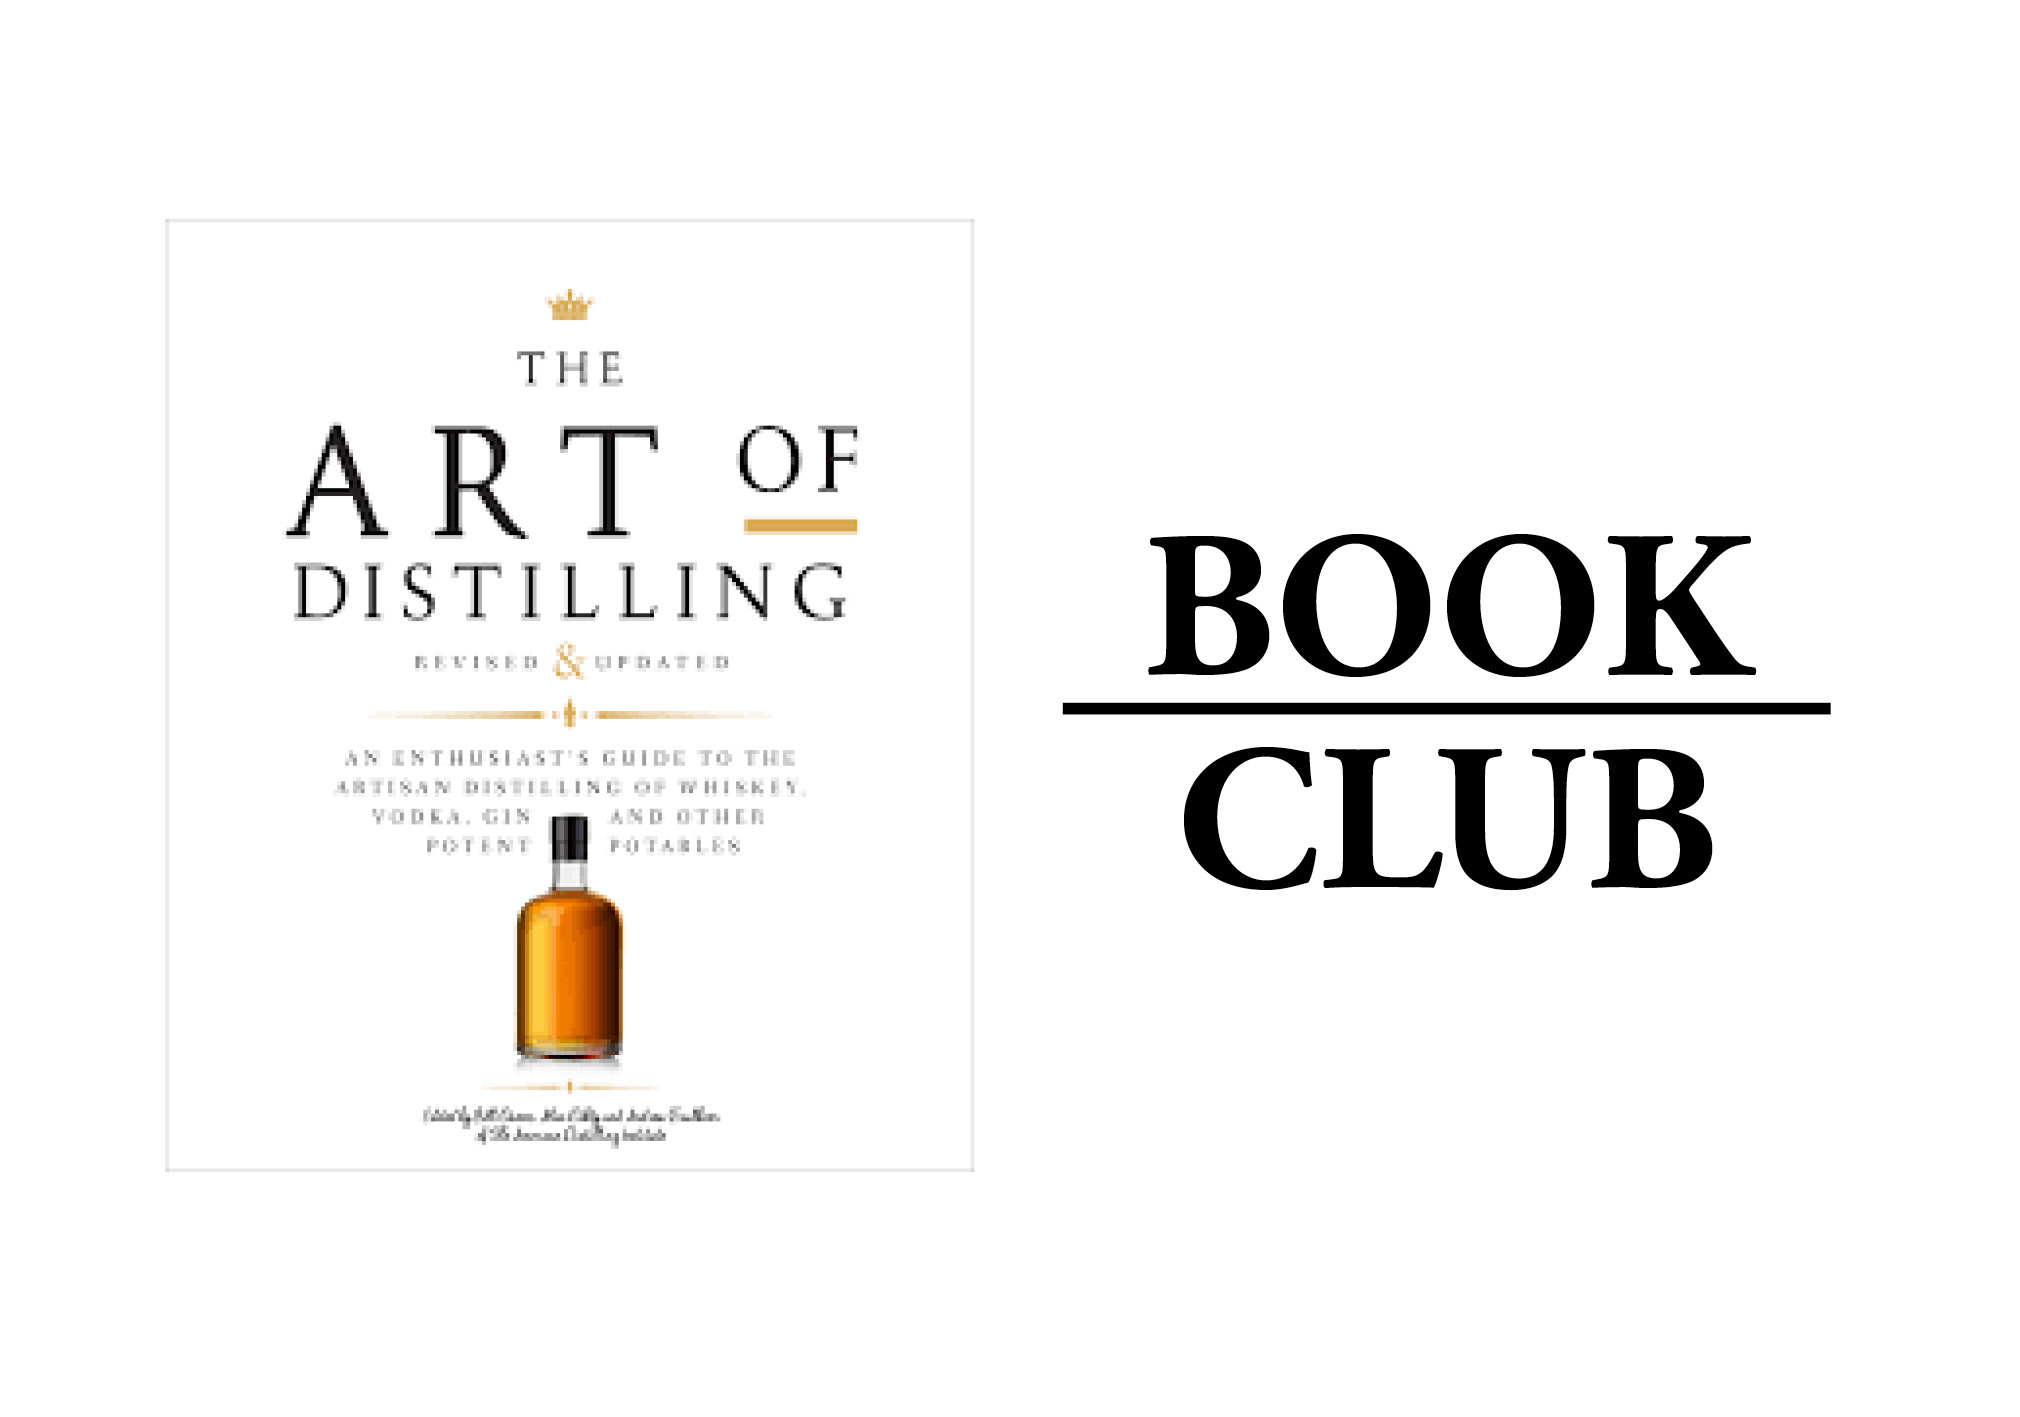 THE ART OF DISTILLING By Bill Owens